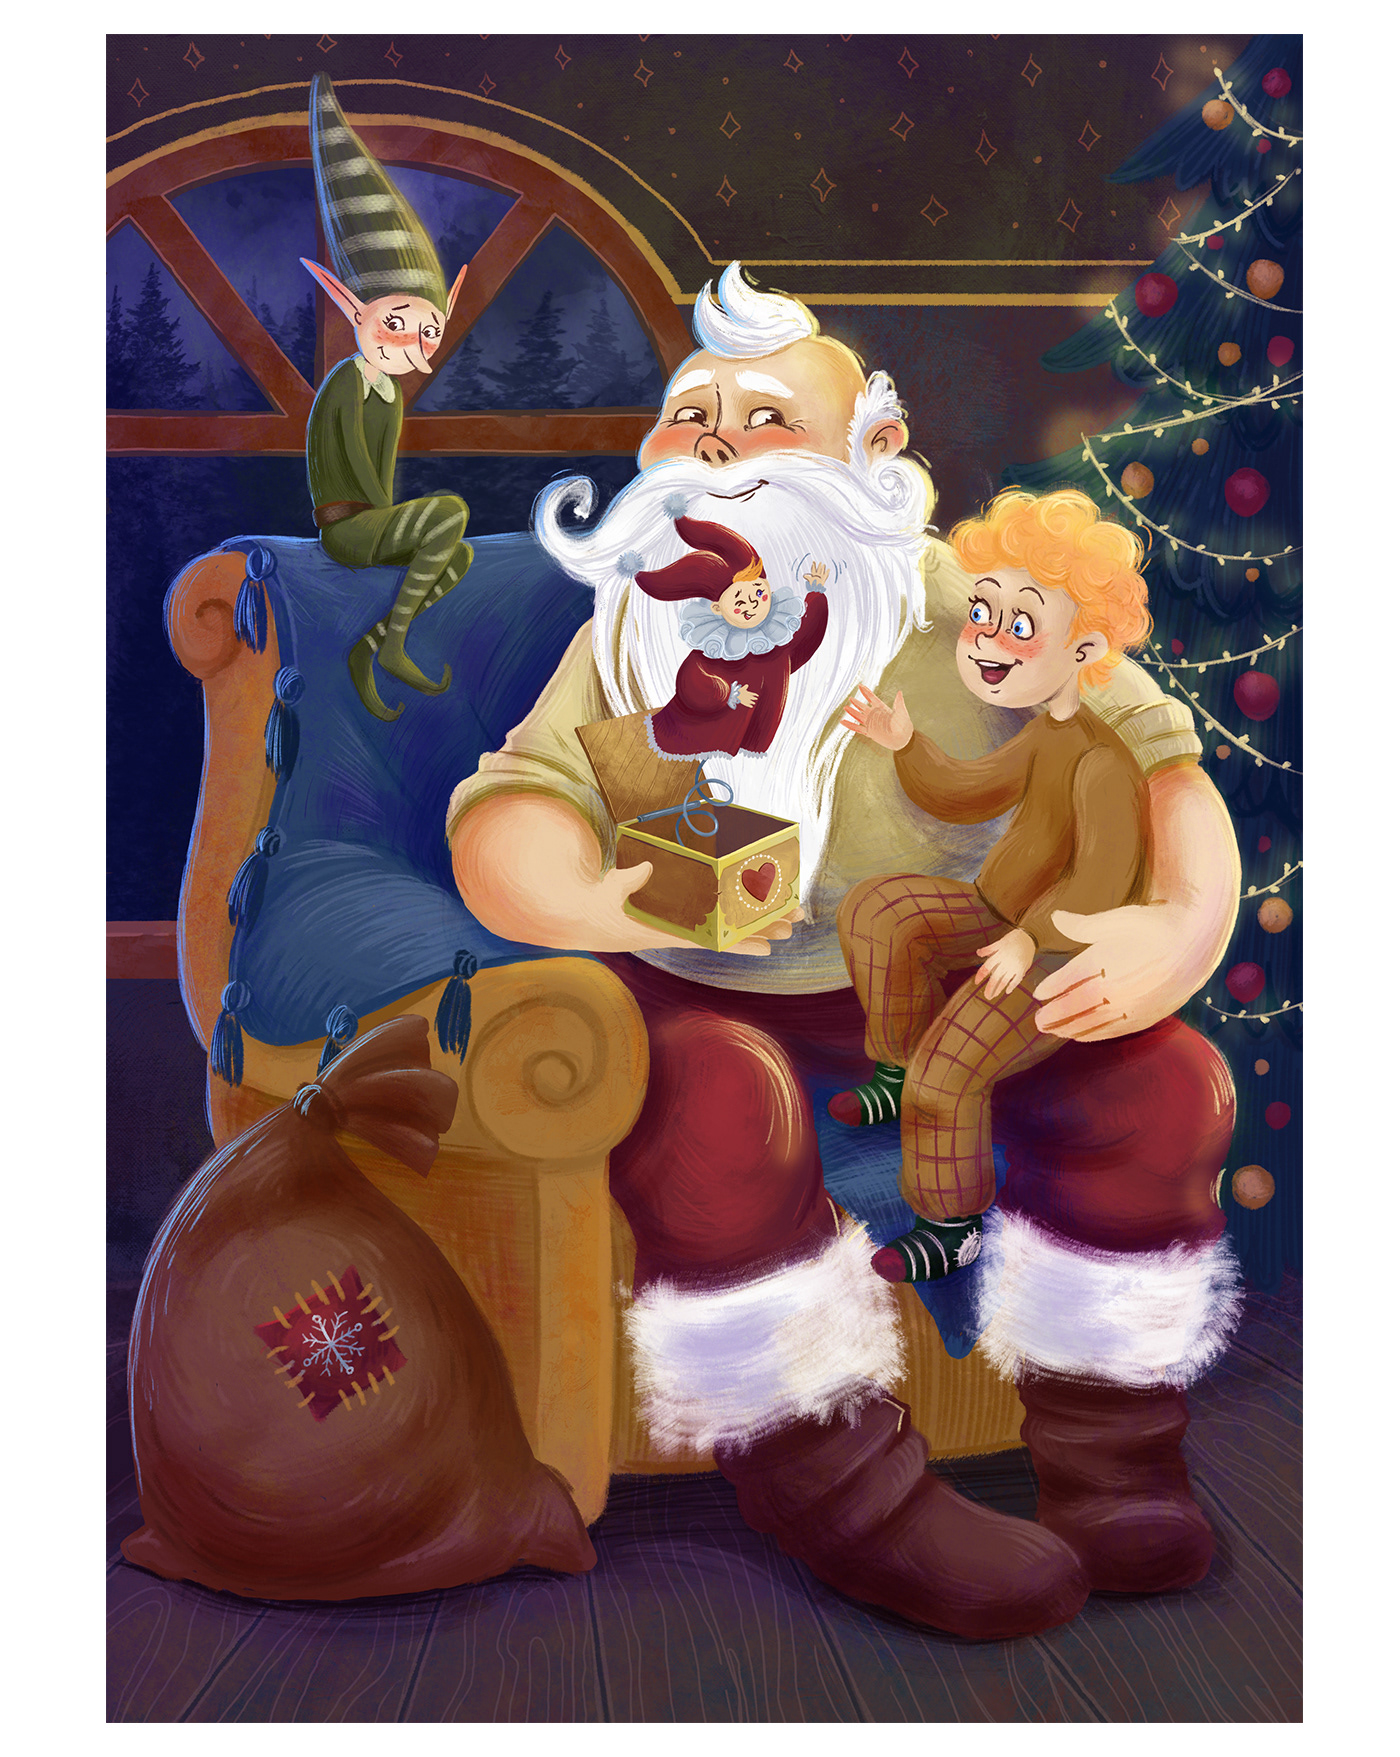 advent calendar children's book christmas Tree cover elf fairy story new year Santa Claus surprise toys